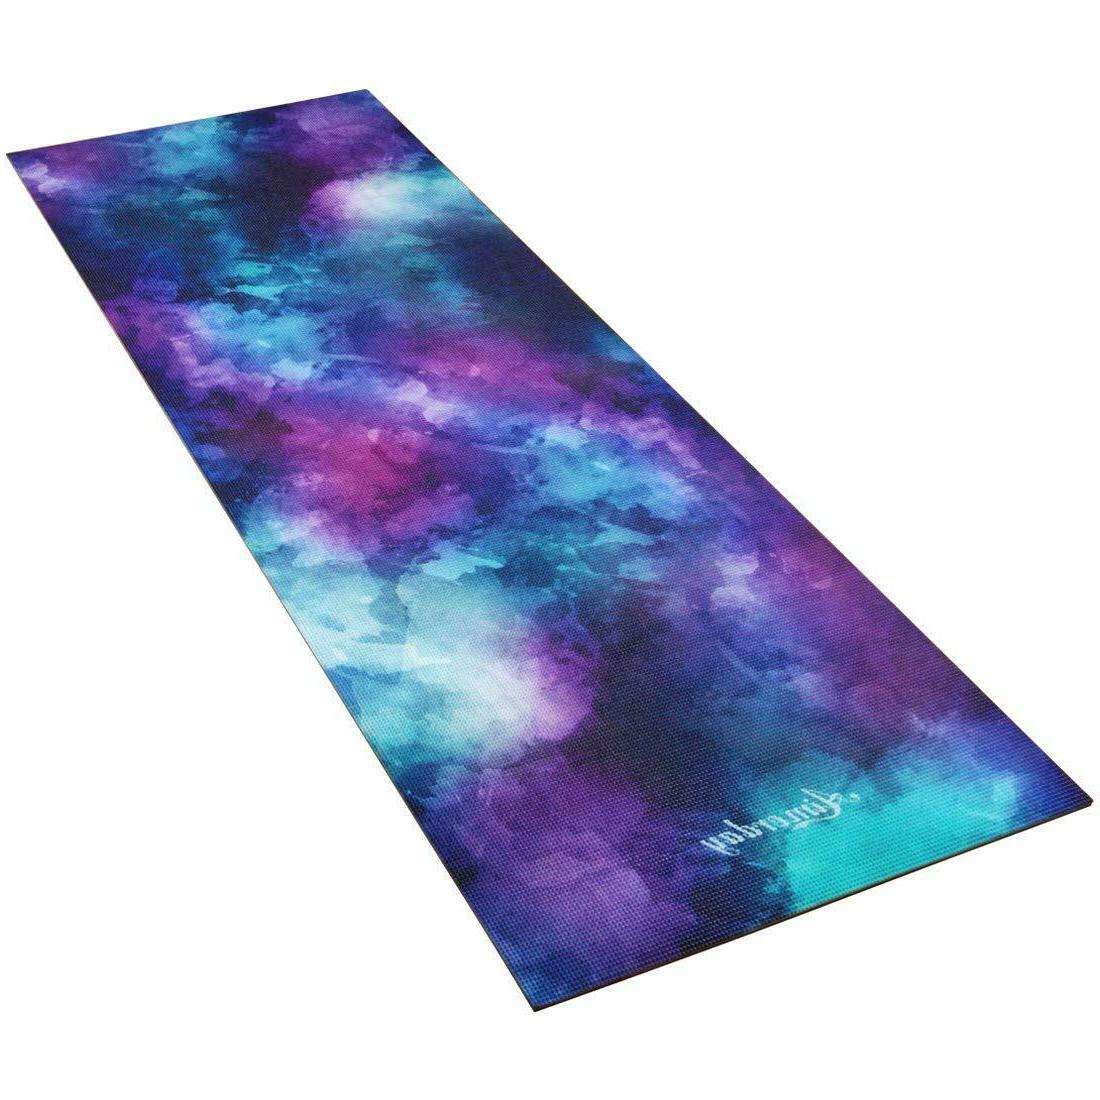 Yoga Mat Workout Floor Mats Exercise Eco Friendly